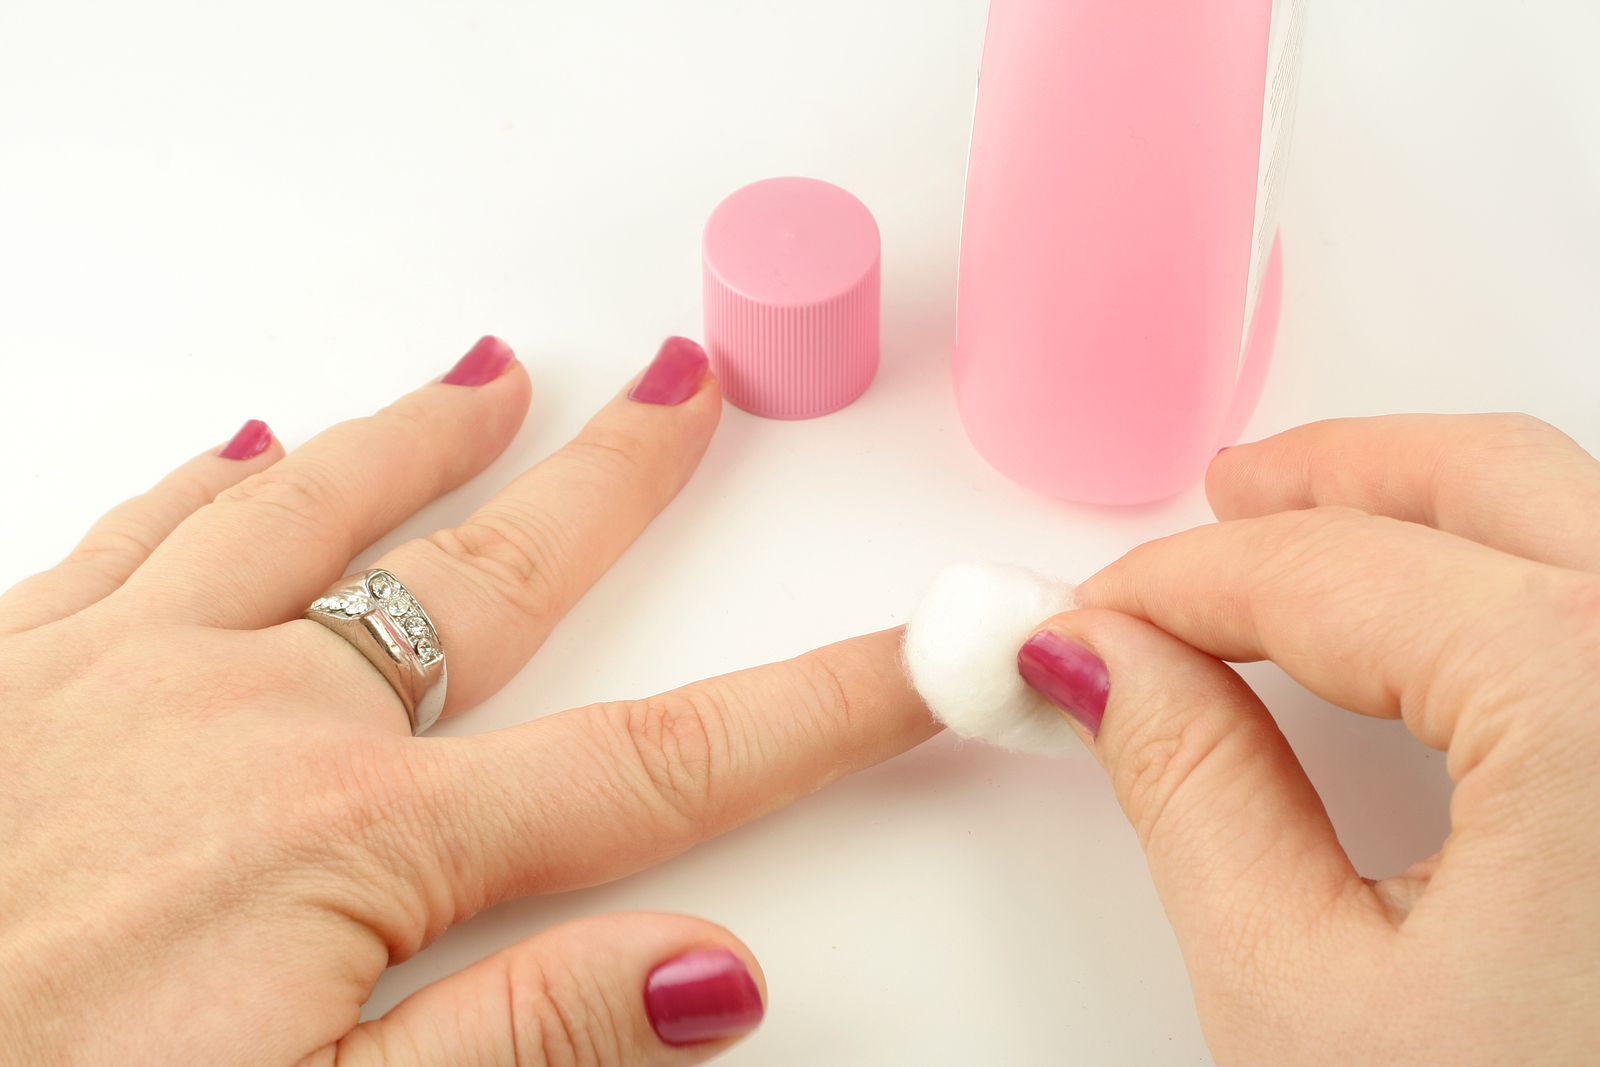 Nail polish to remove nail polish